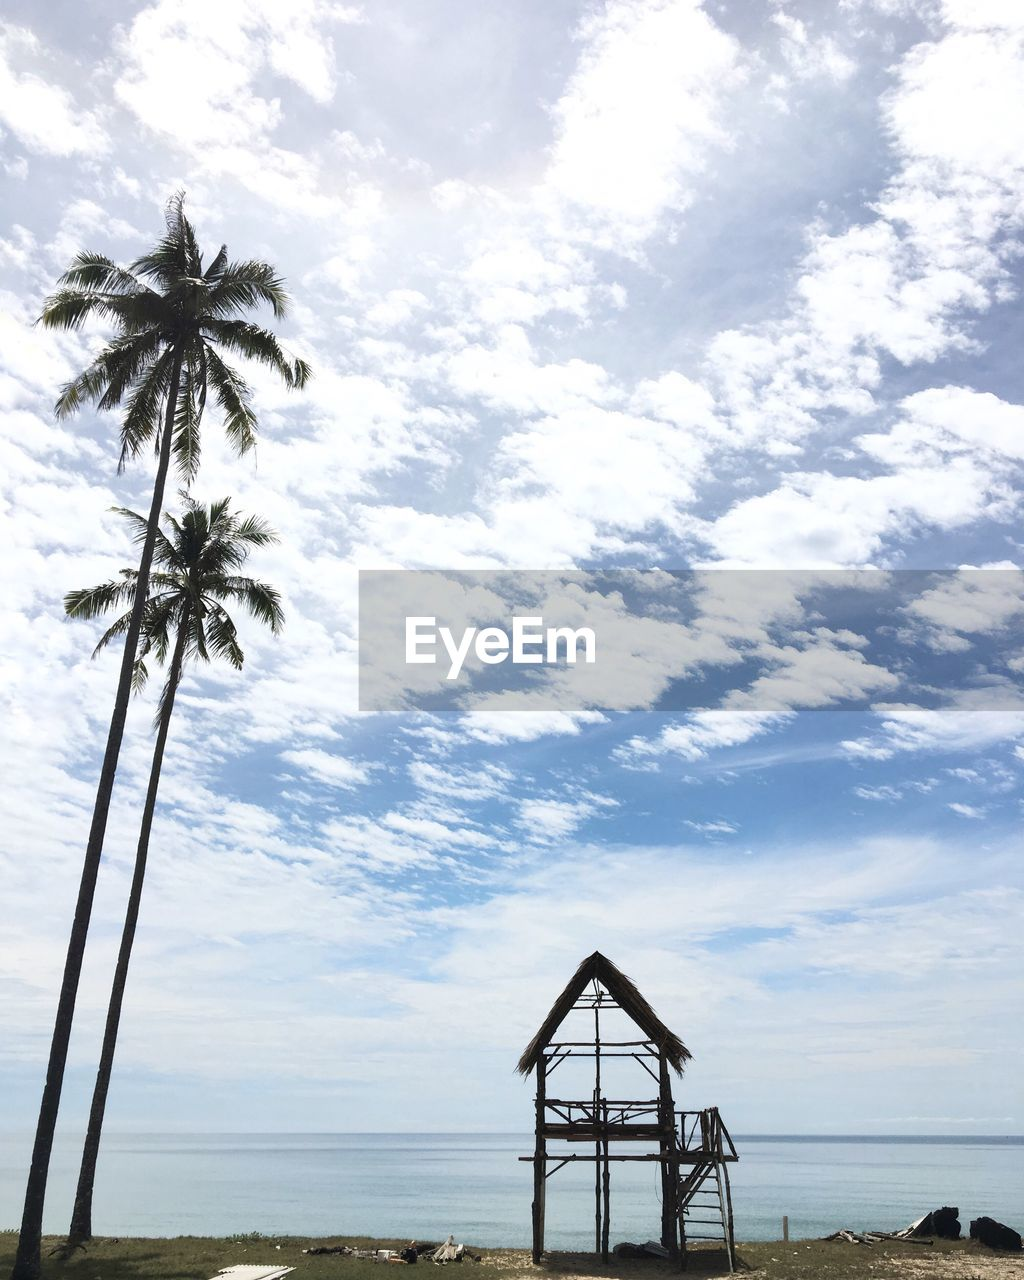 sky, palm tree, sea, beach, cloud - sky, tree, tranquil scene, water, tranquility, outdoors, no people, horizon over water, day, scenics, nature, beauty in nature